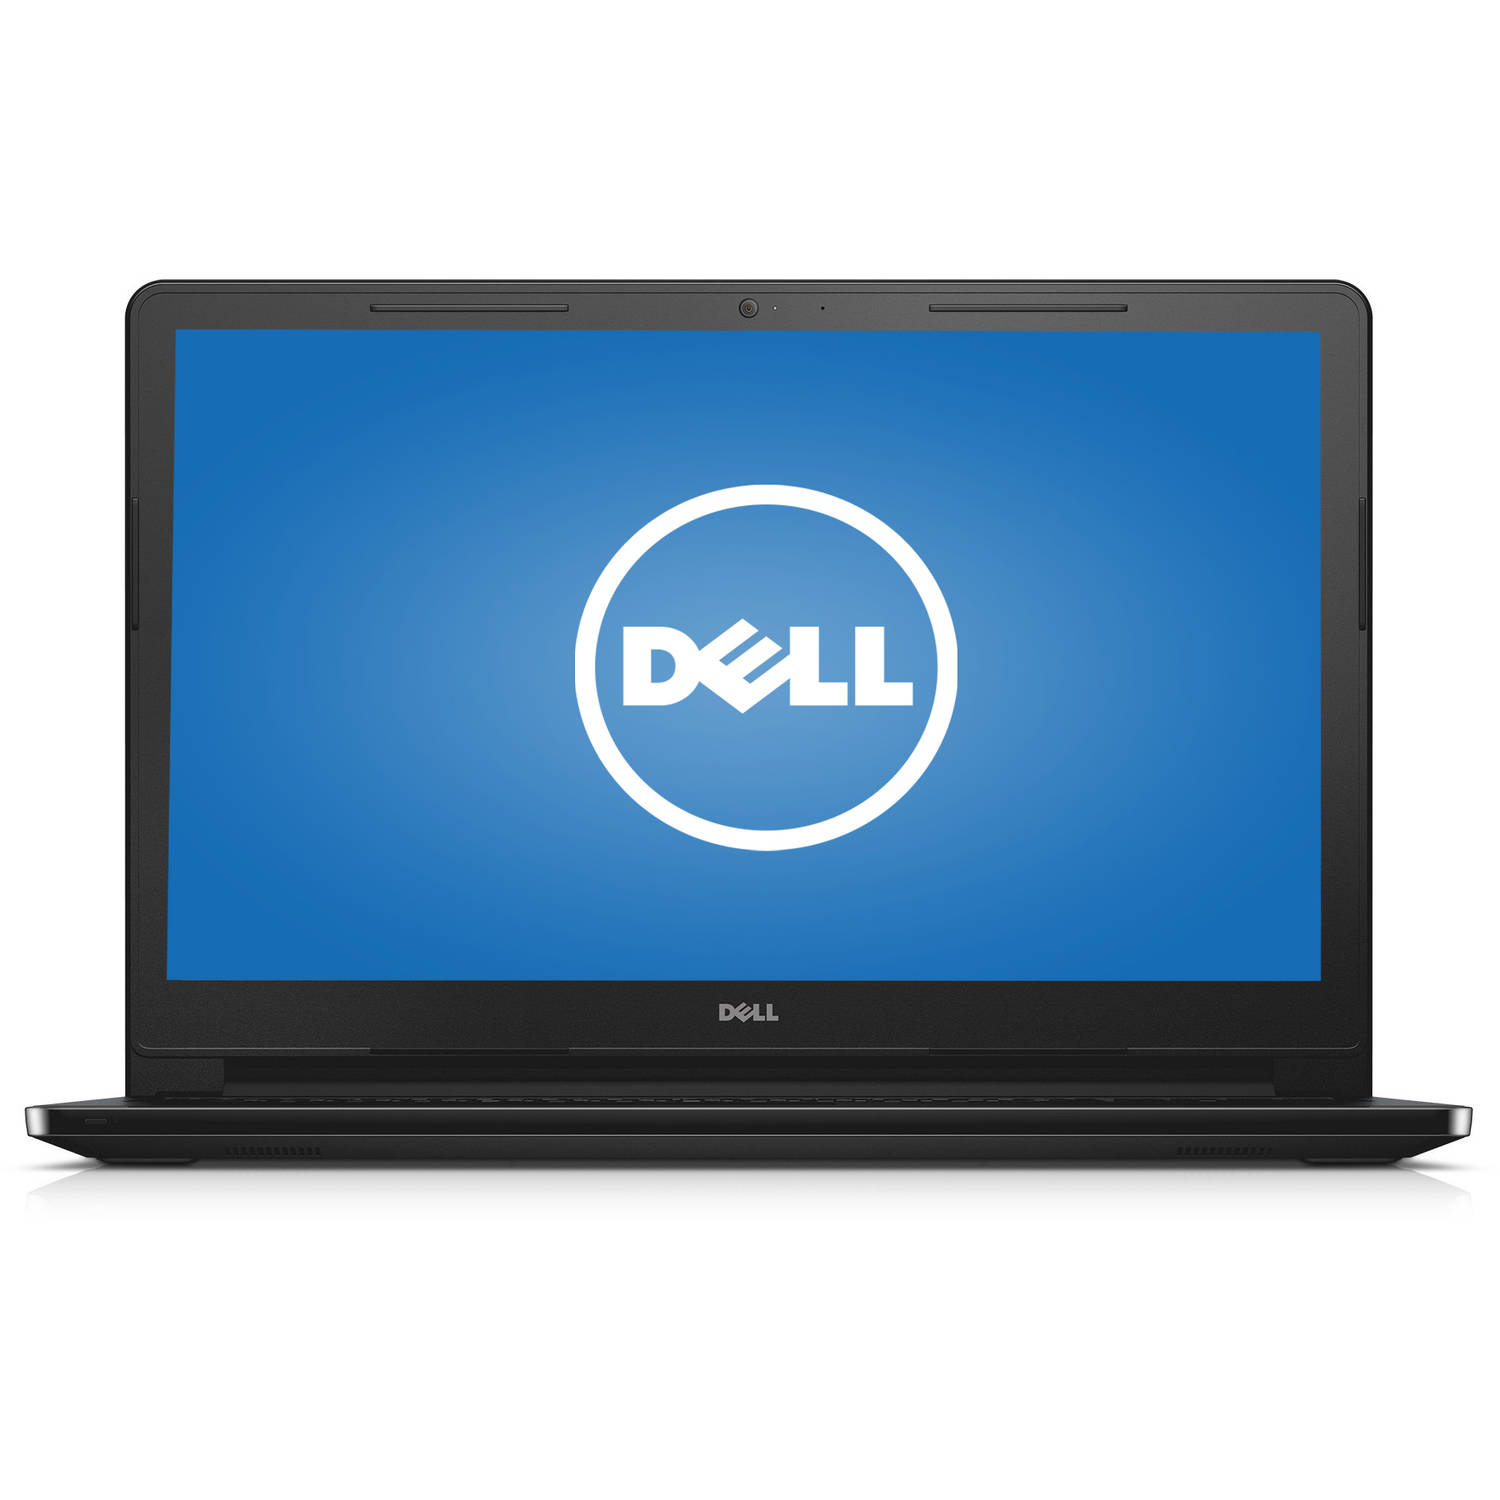 "Dell Black 15.6"" Inspiron i3552 Laptop PC with Intel Cele..."